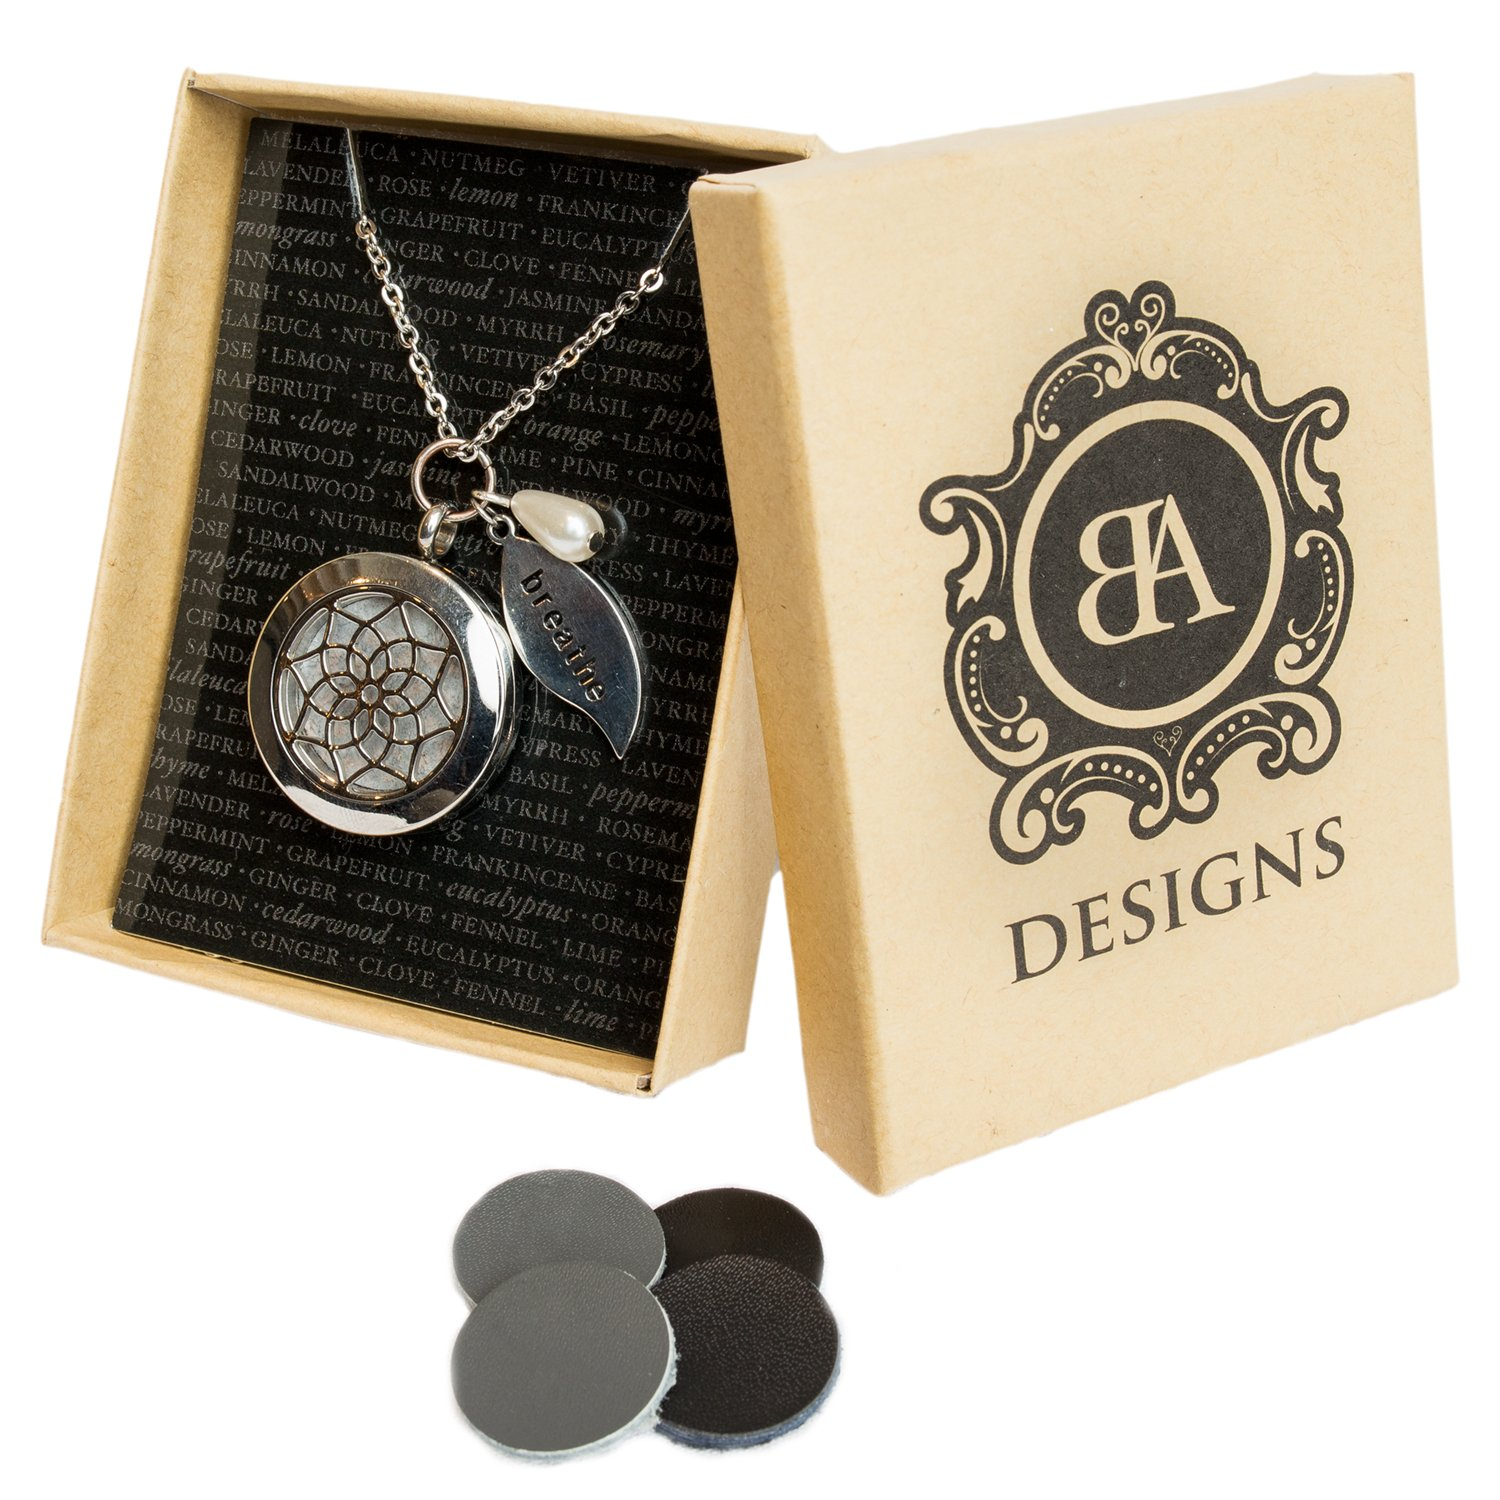 Stainless Steel Essential Oil Diffuser and Aromatherapy Necklace